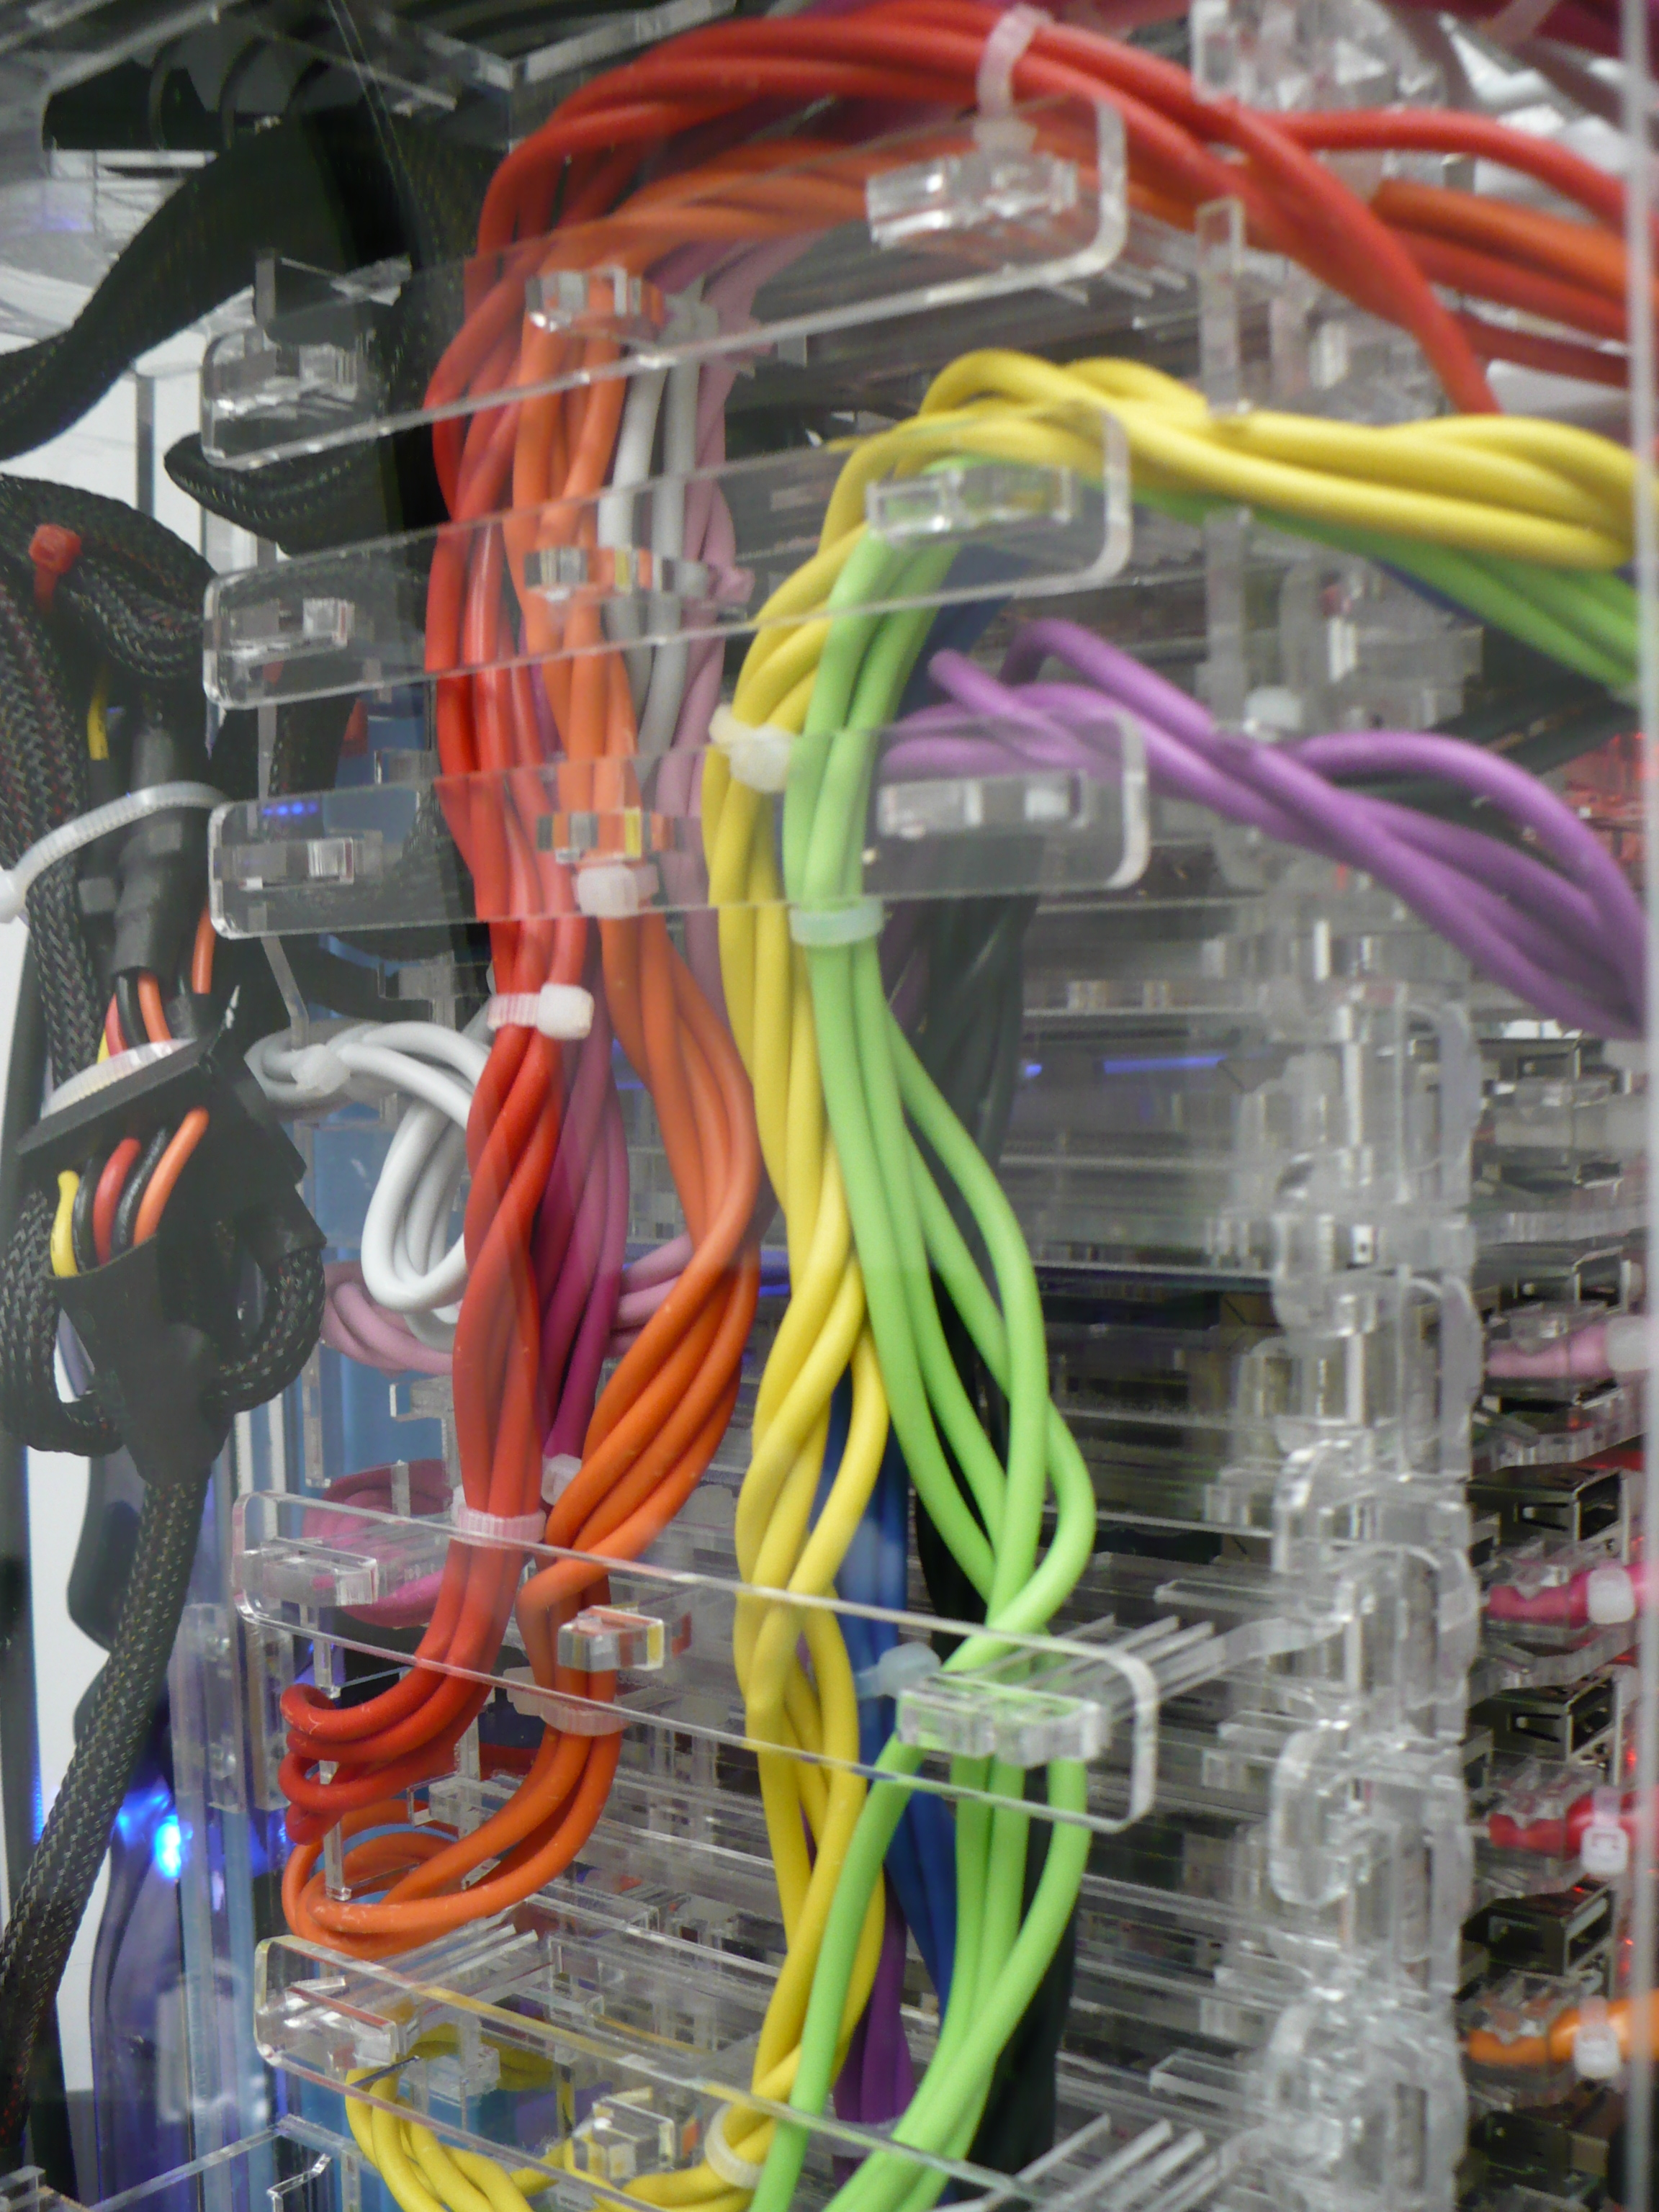 13. Power Cables | Like Magic Appears!